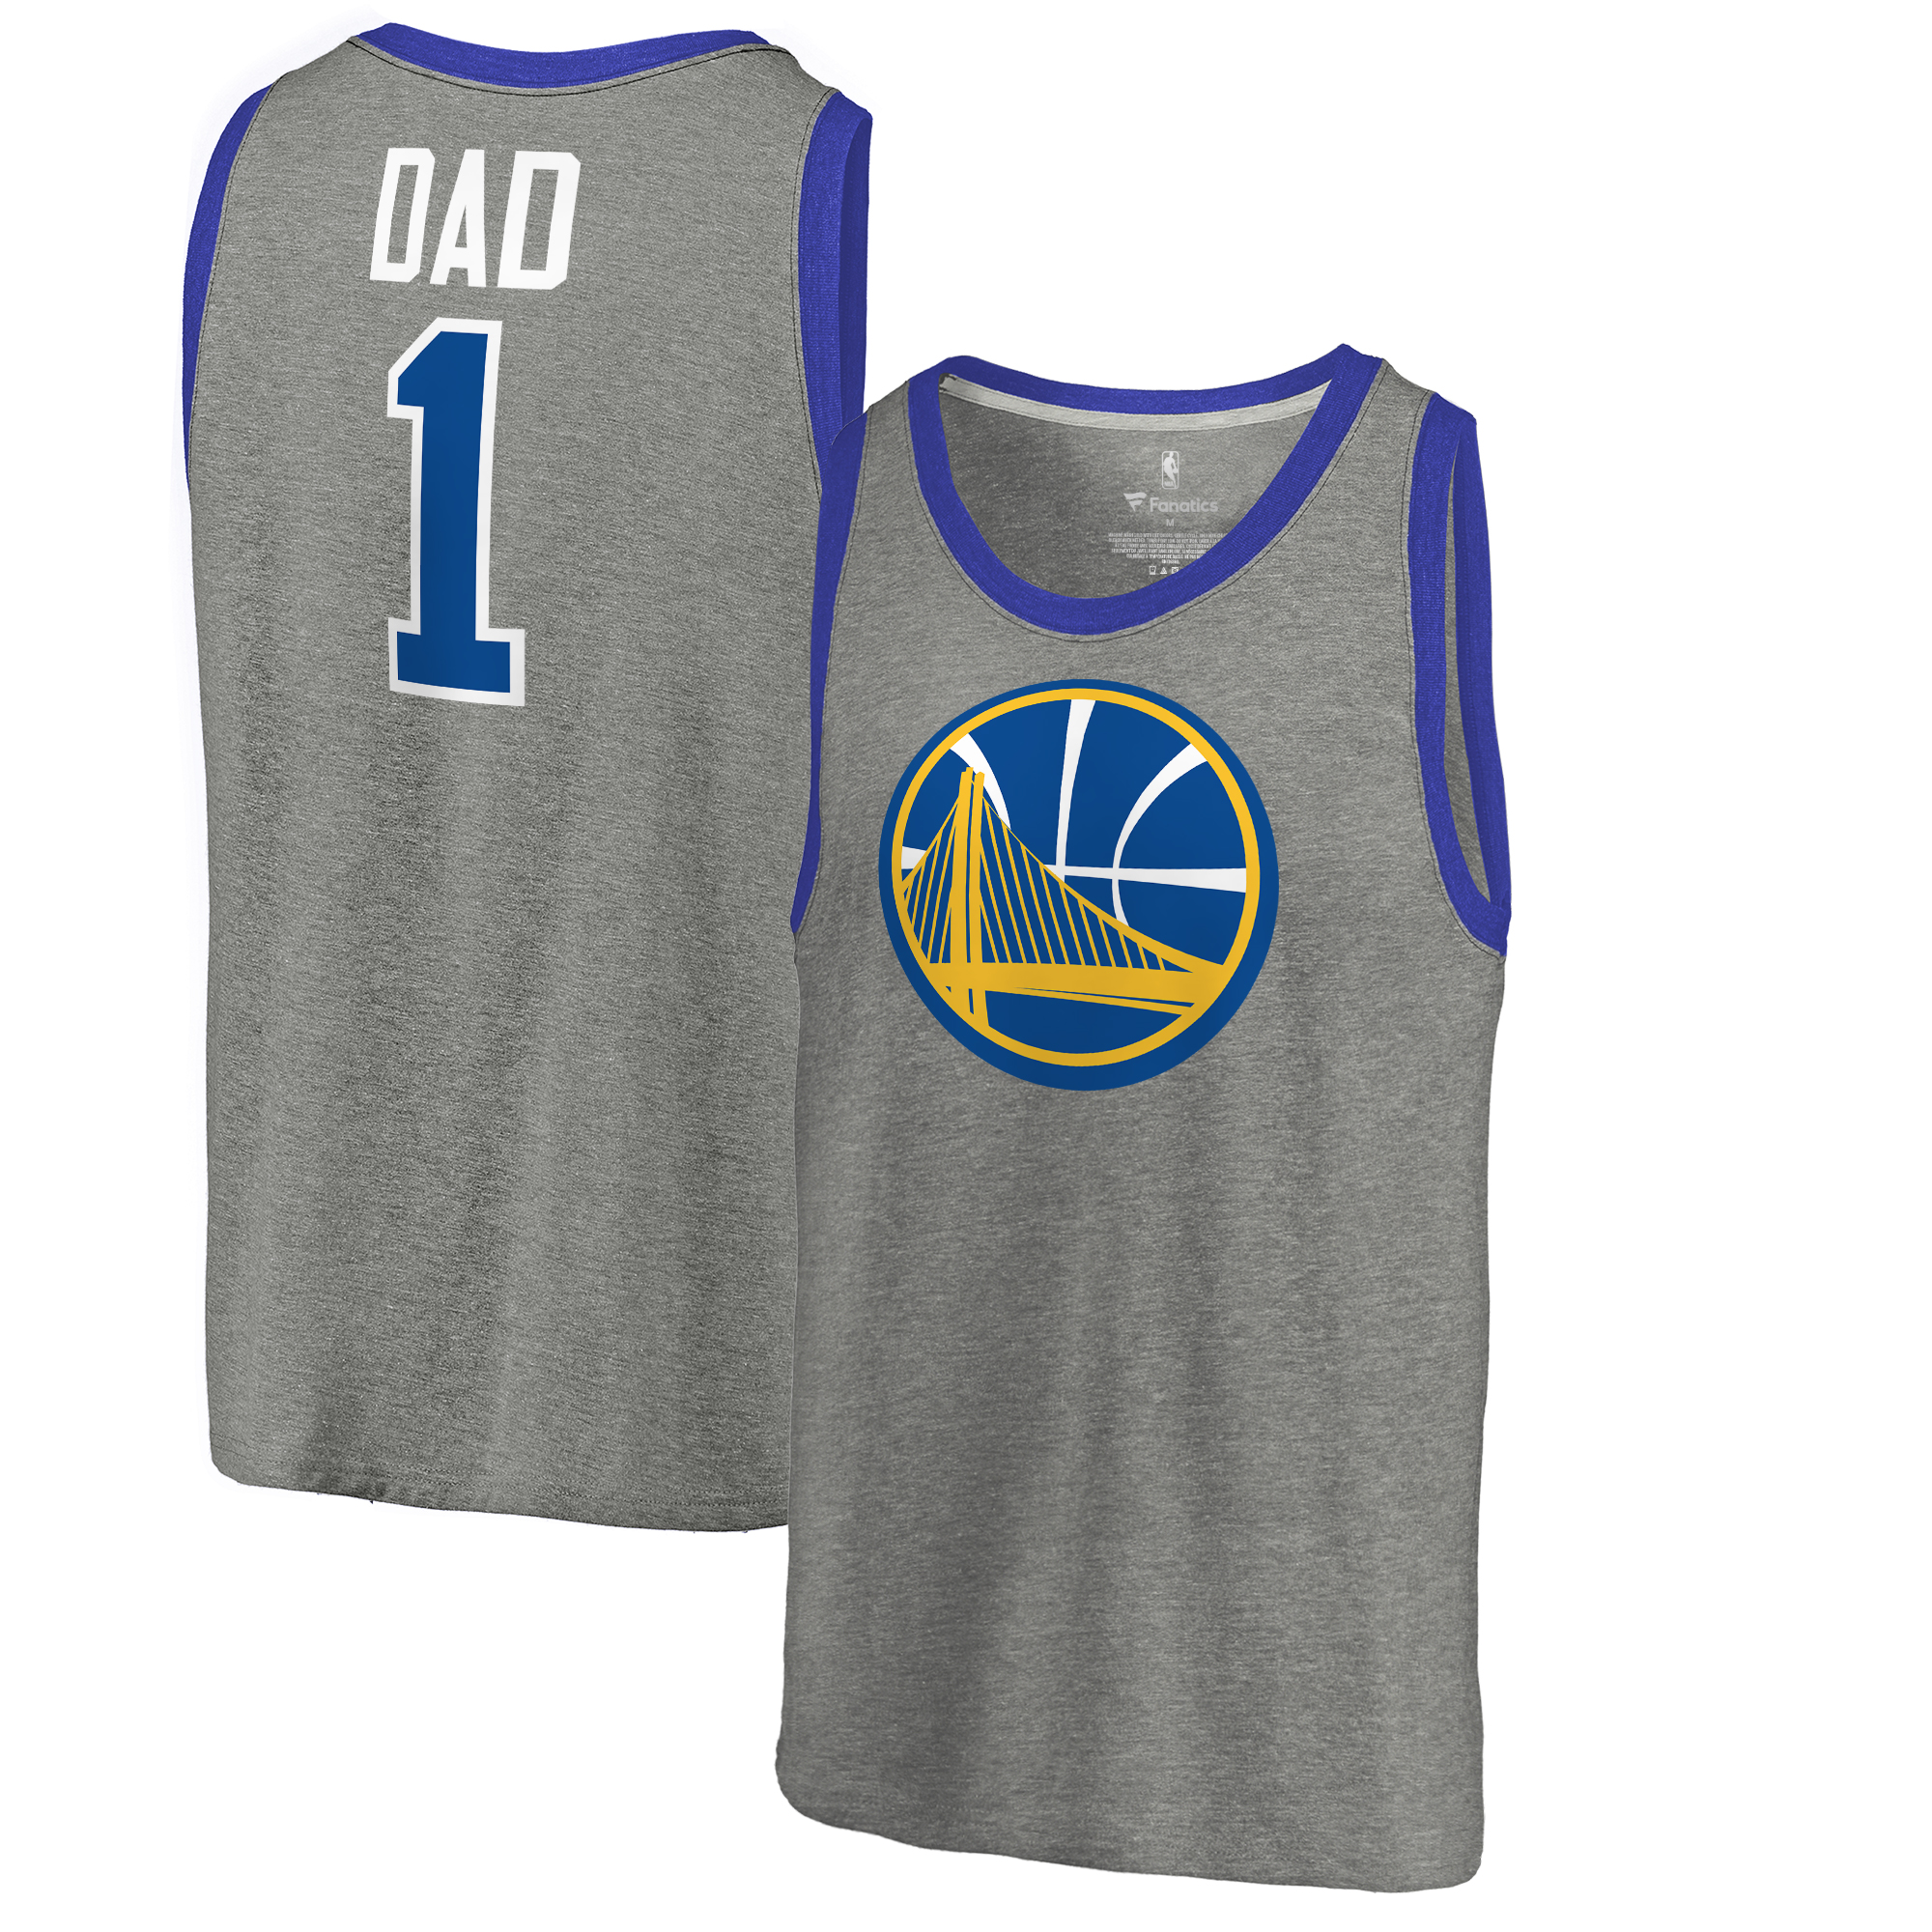 Golden State Warriors Fanatics Branded #1 Dad Tri-Blend Tank Top - Ash